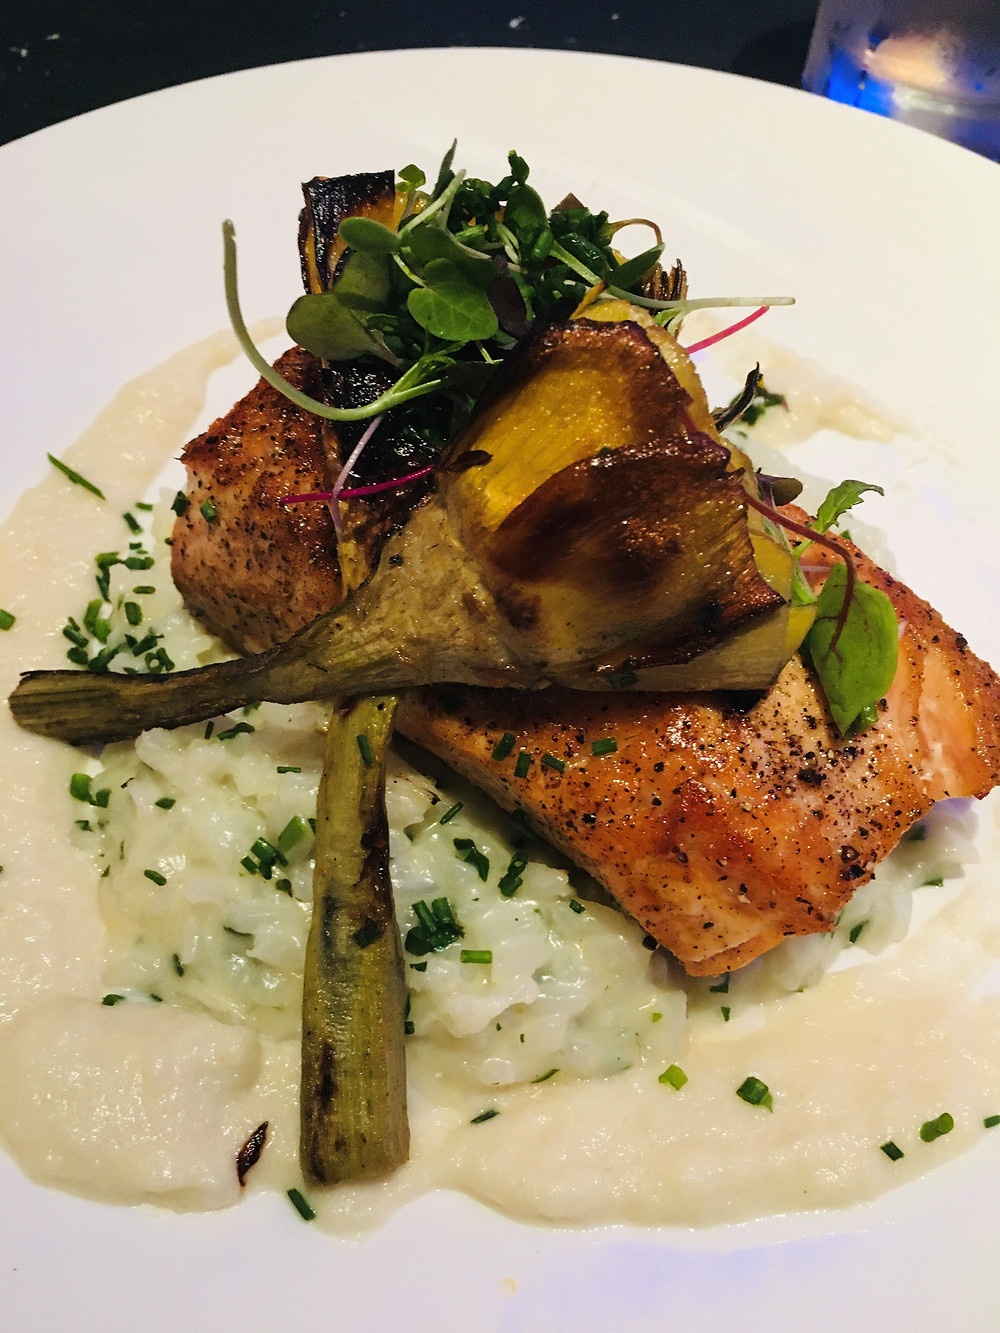 Salmon with Roasted Artichokes over Risotto